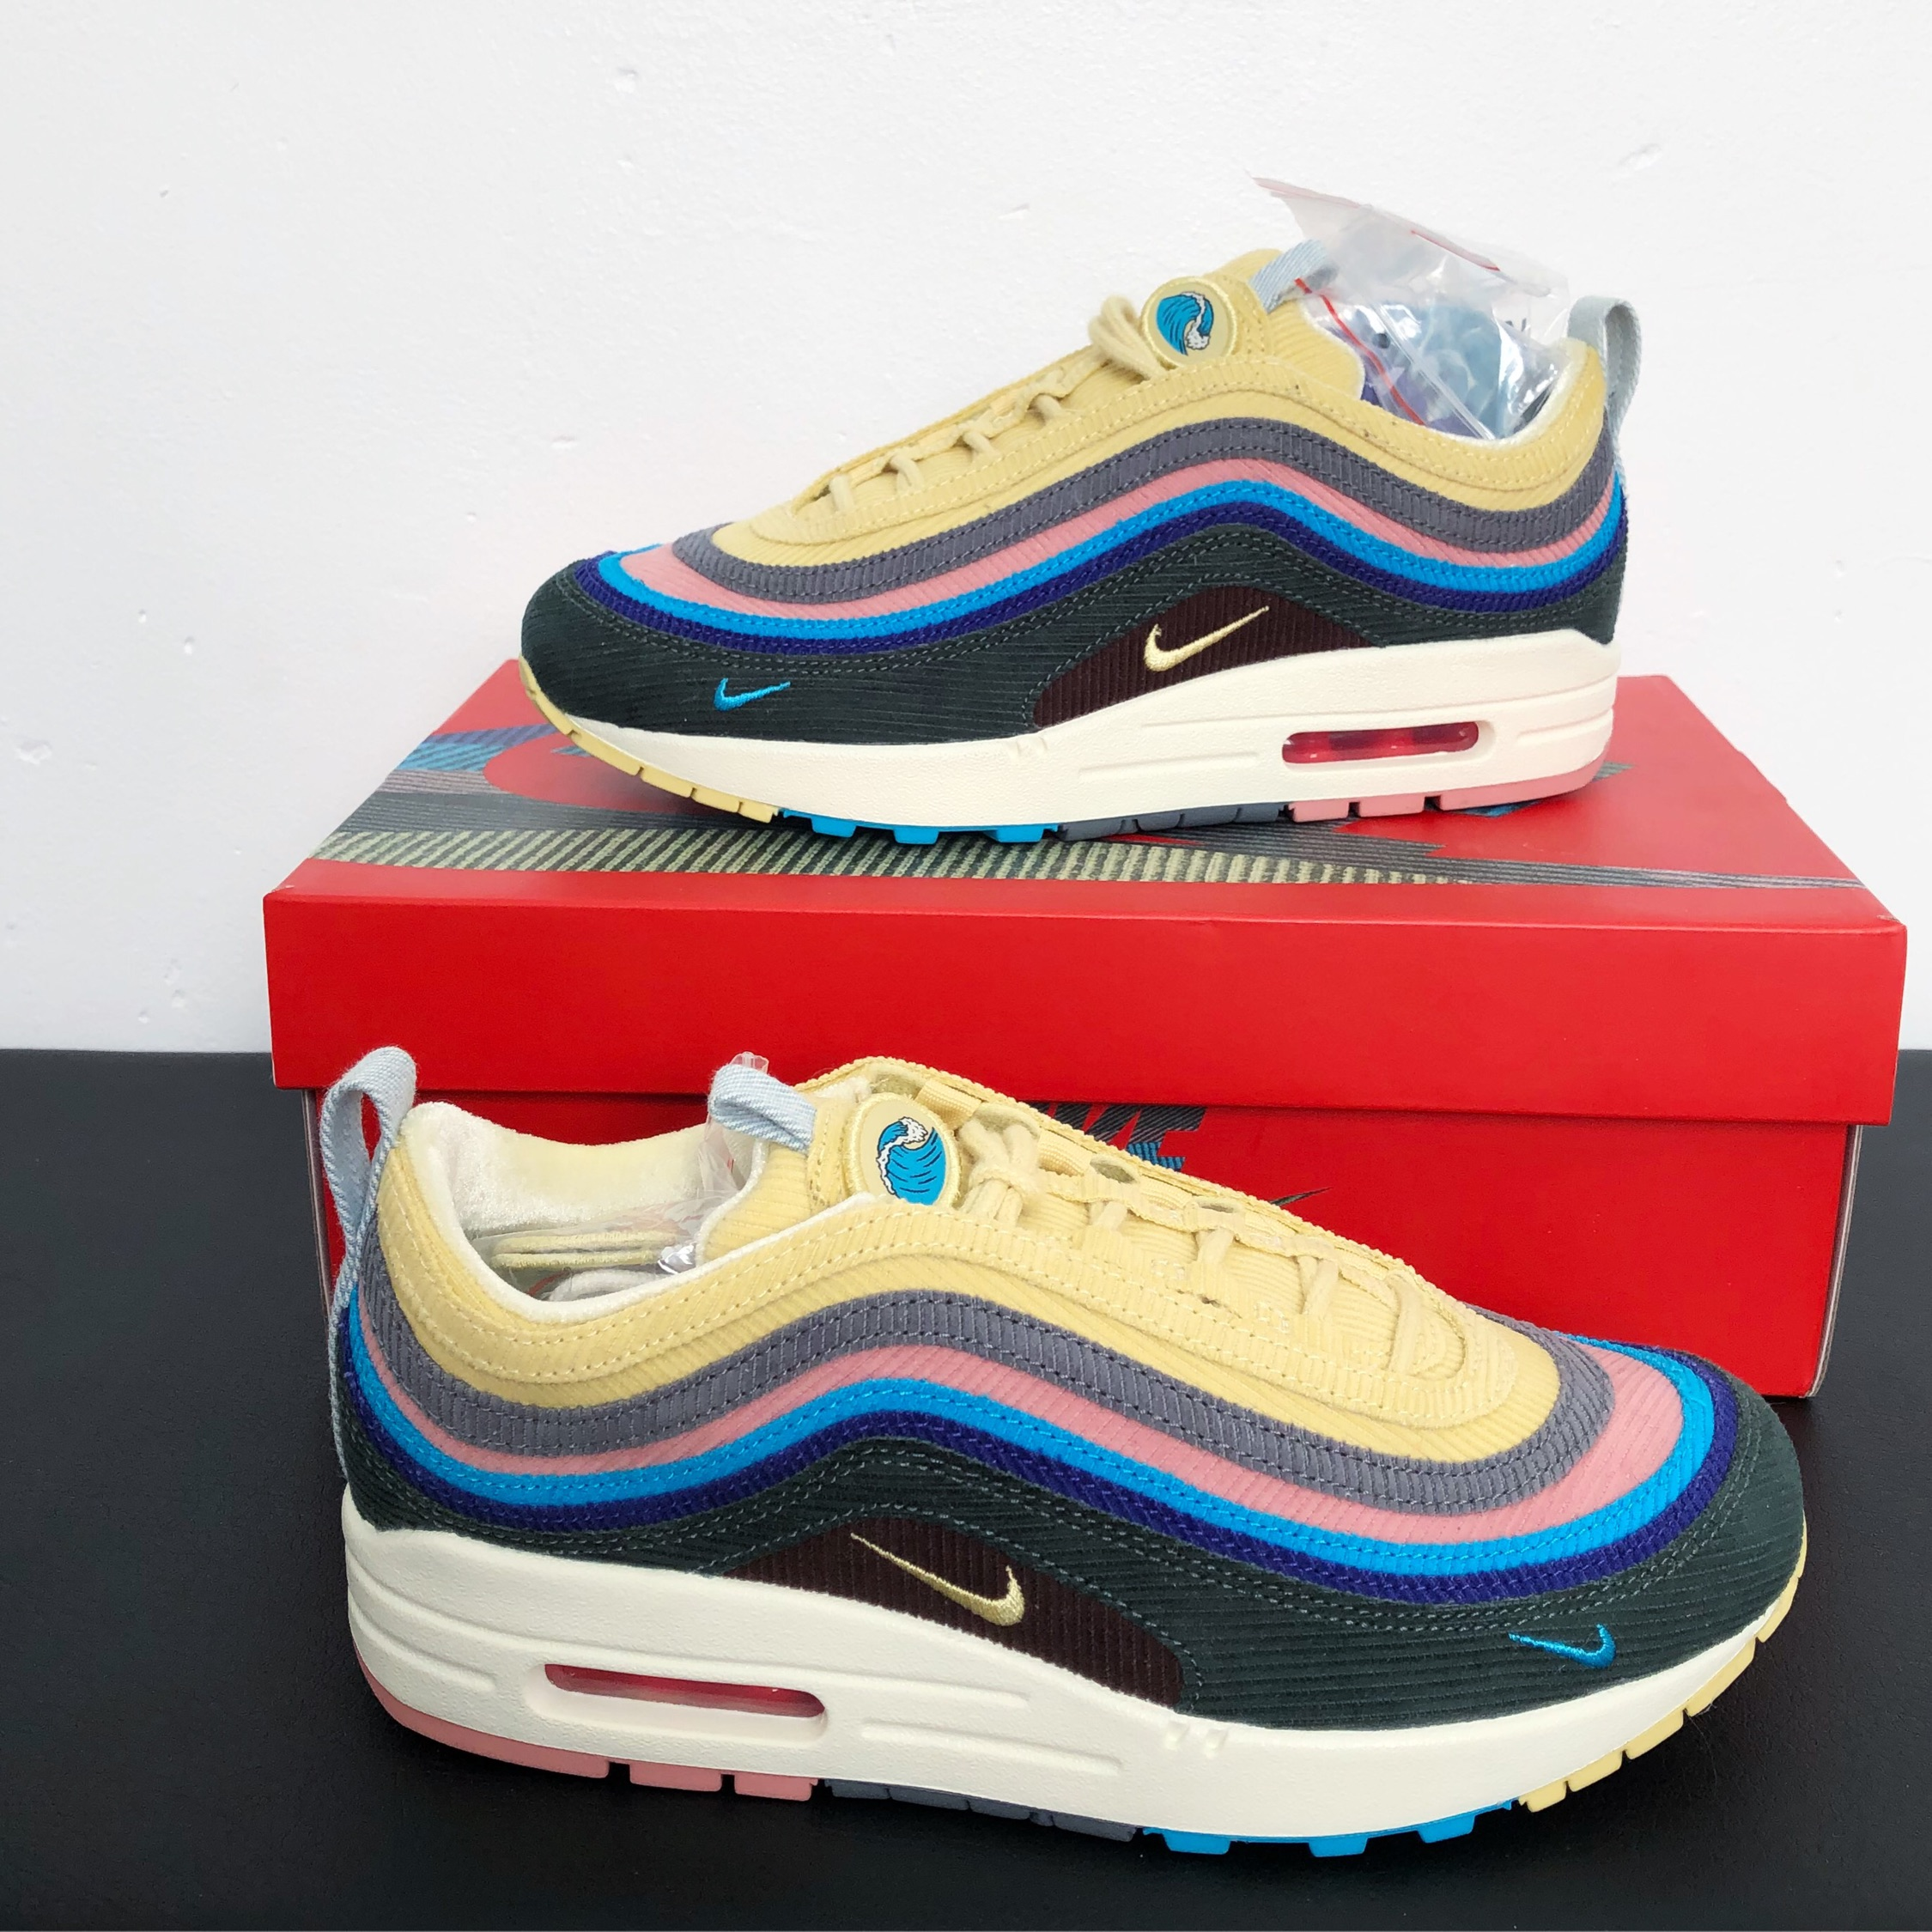 Nike Air Max 97 Wild West BV6056 200 Release Date